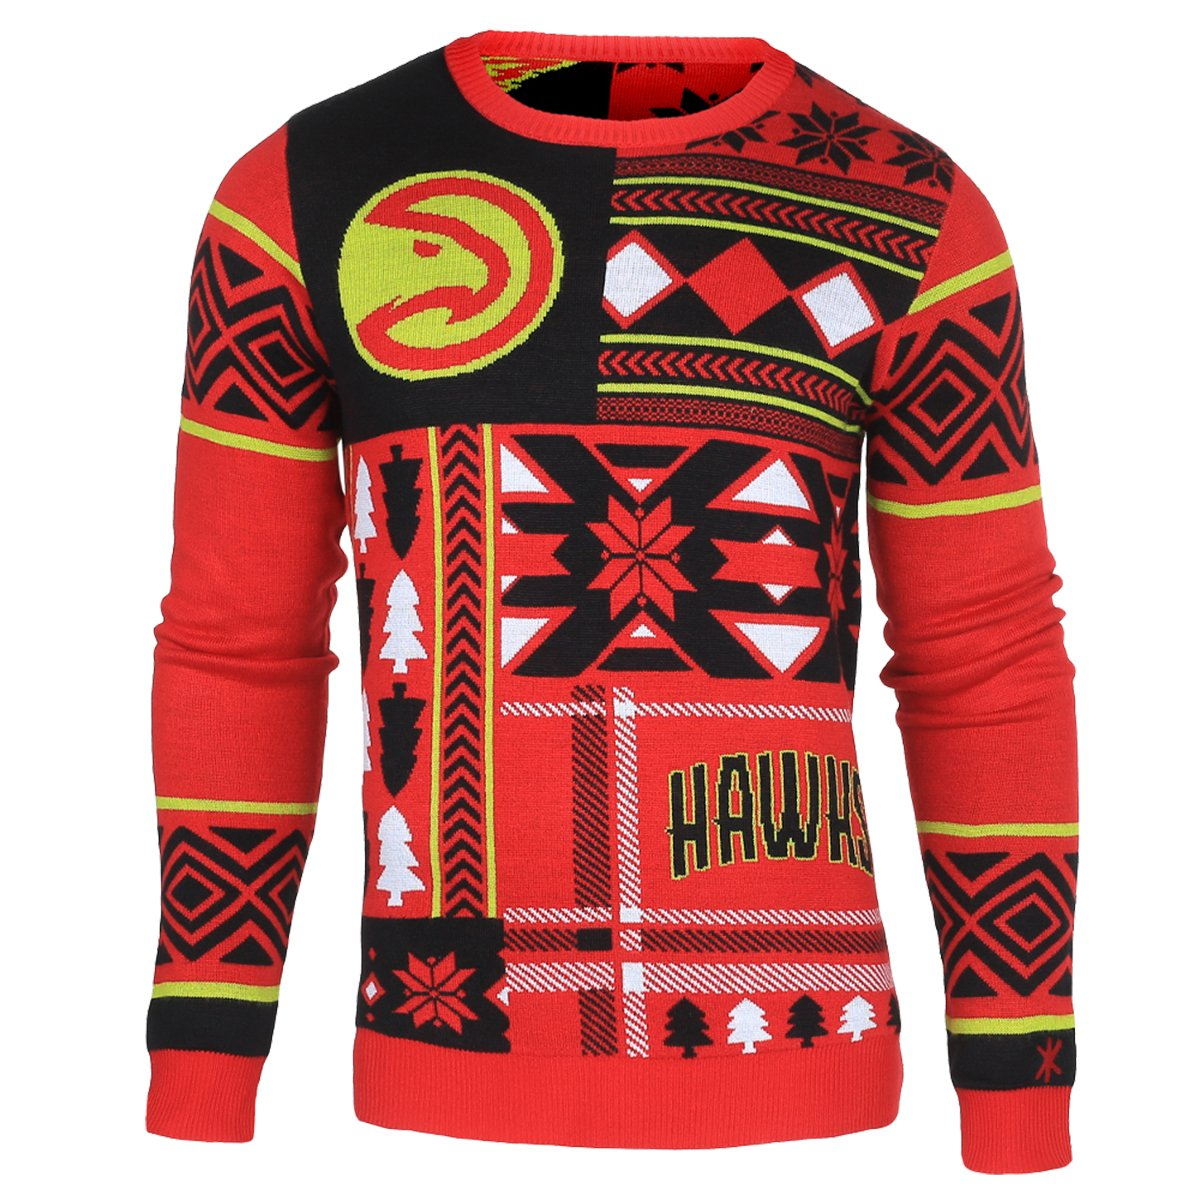 Amazon.com : NBA Patches Ugly Sweater - Pick Team : Sports & Outdoors